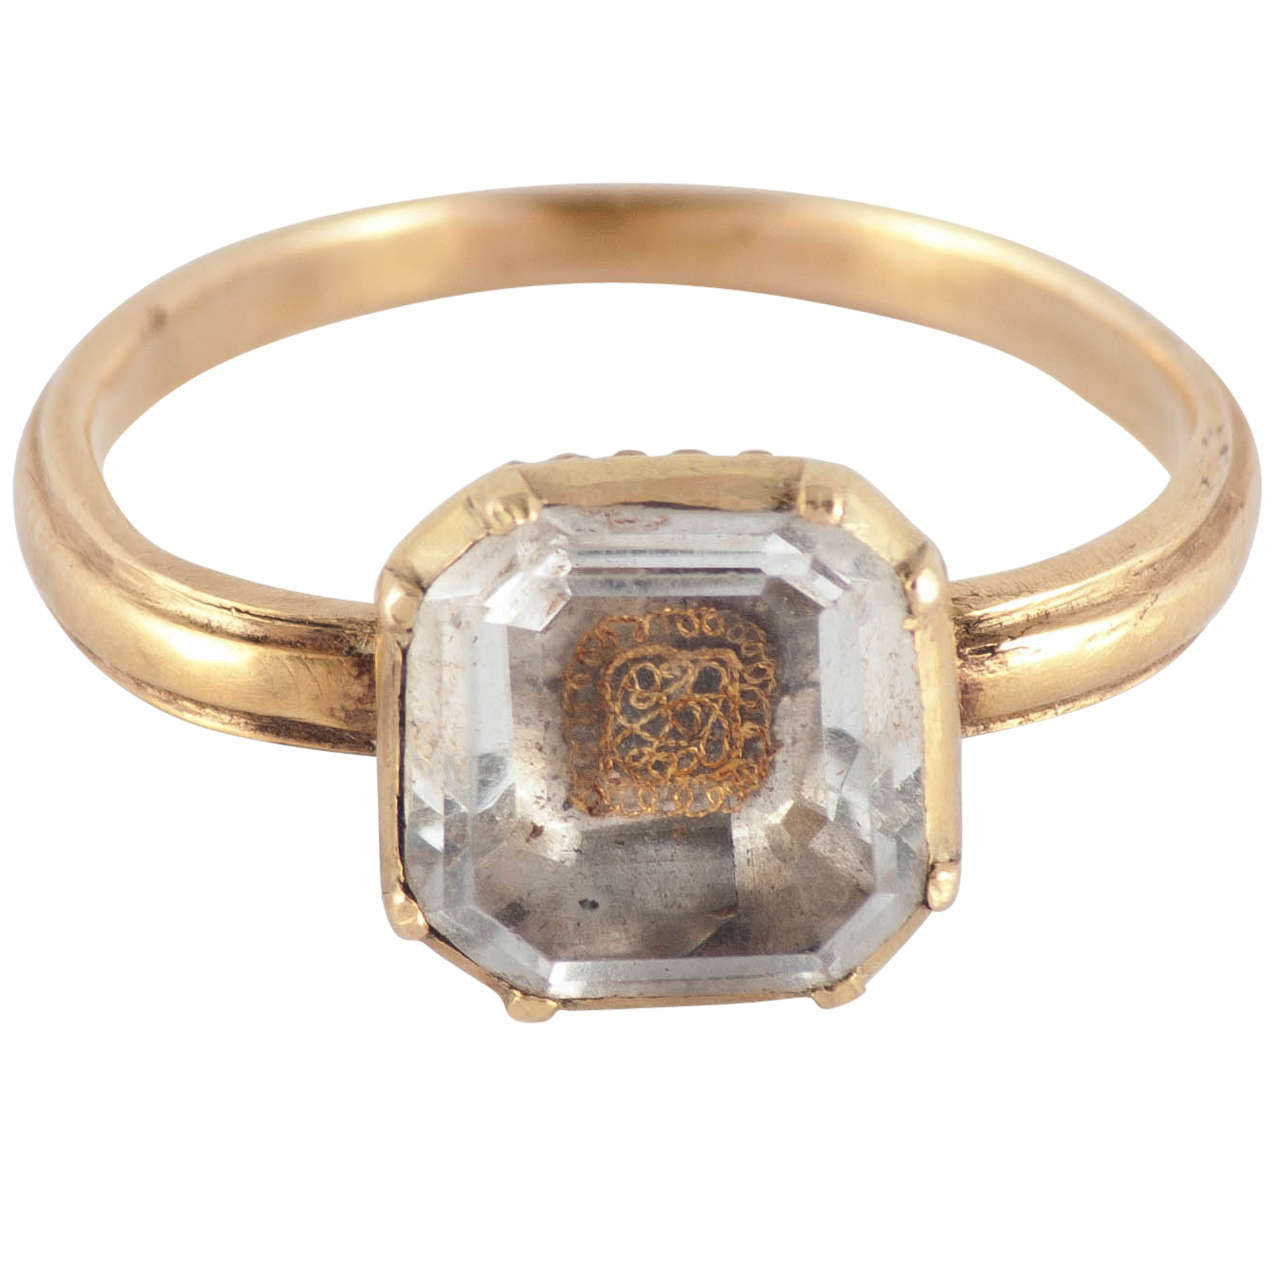 17th Century Rings - 32 For Sale at 1stdibs